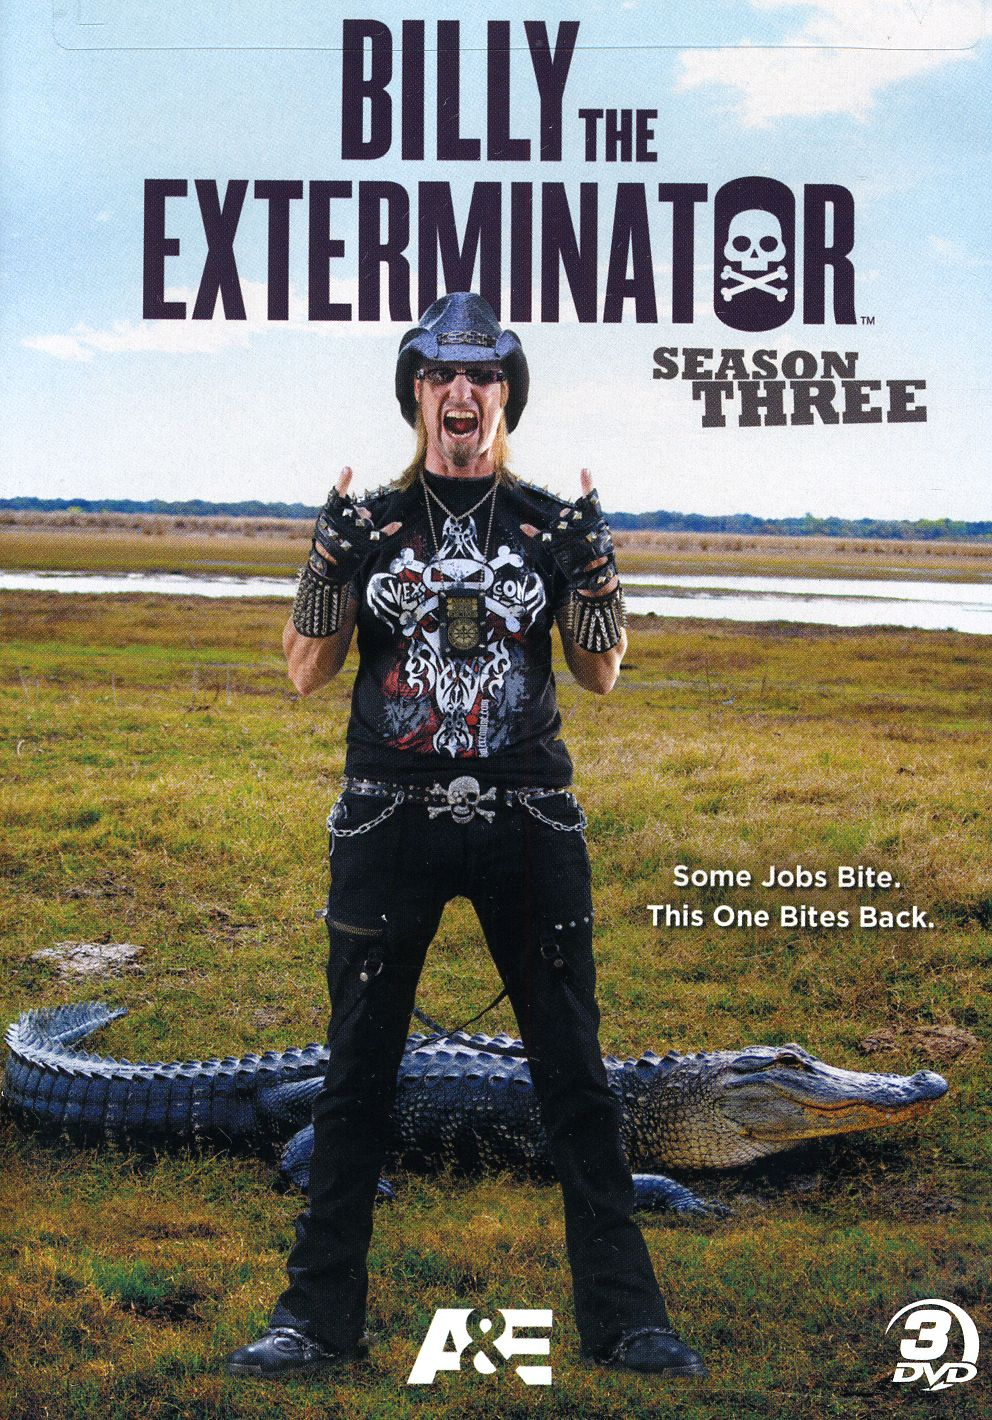 Billy the Exterminator: Season 3 (DVD)